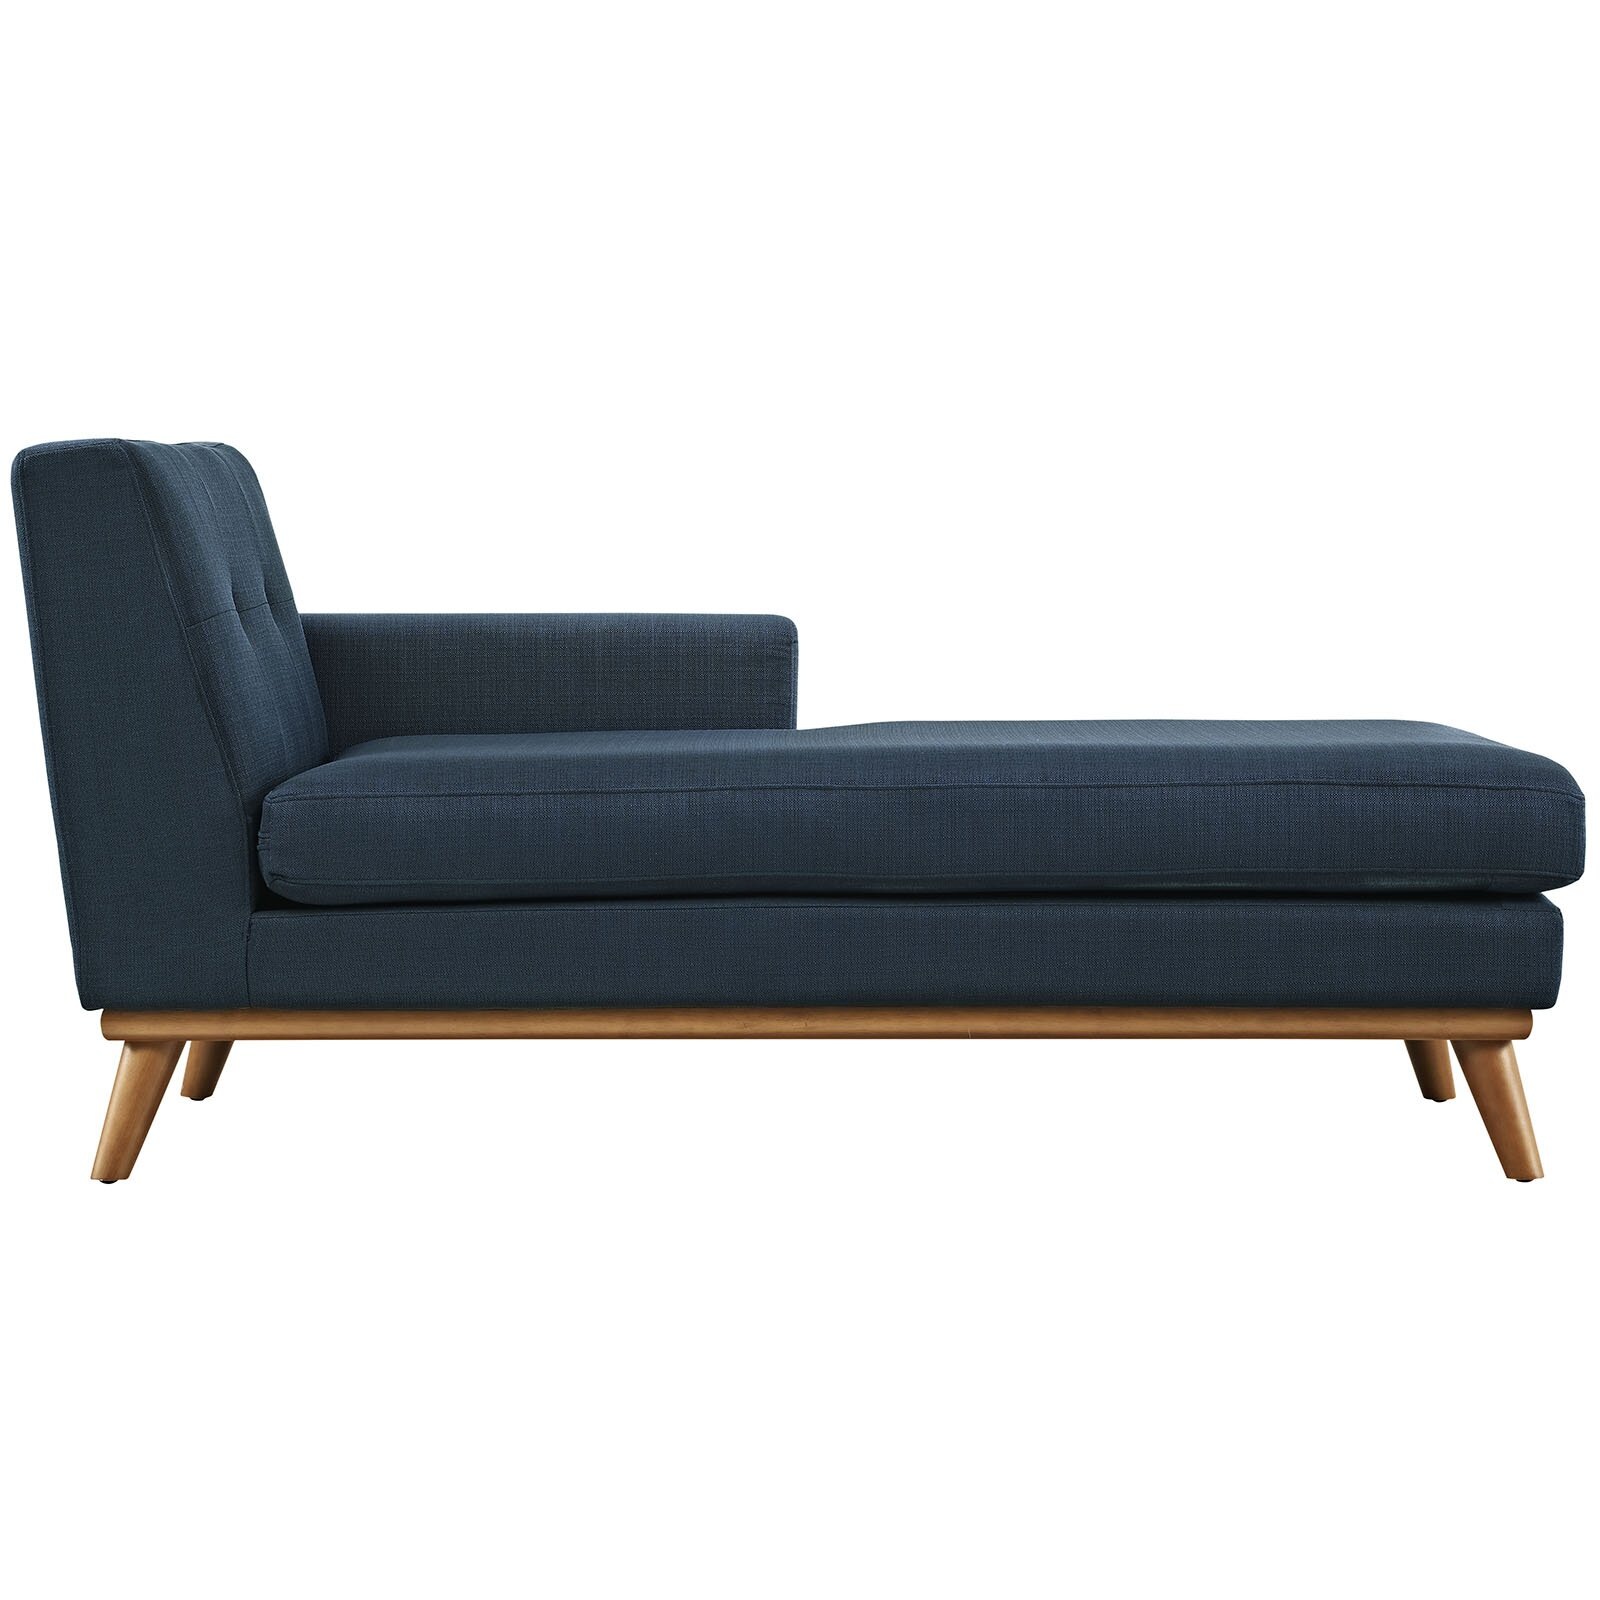 Saginaw chaise lounge reviews allmodern for Baby chaise lounge